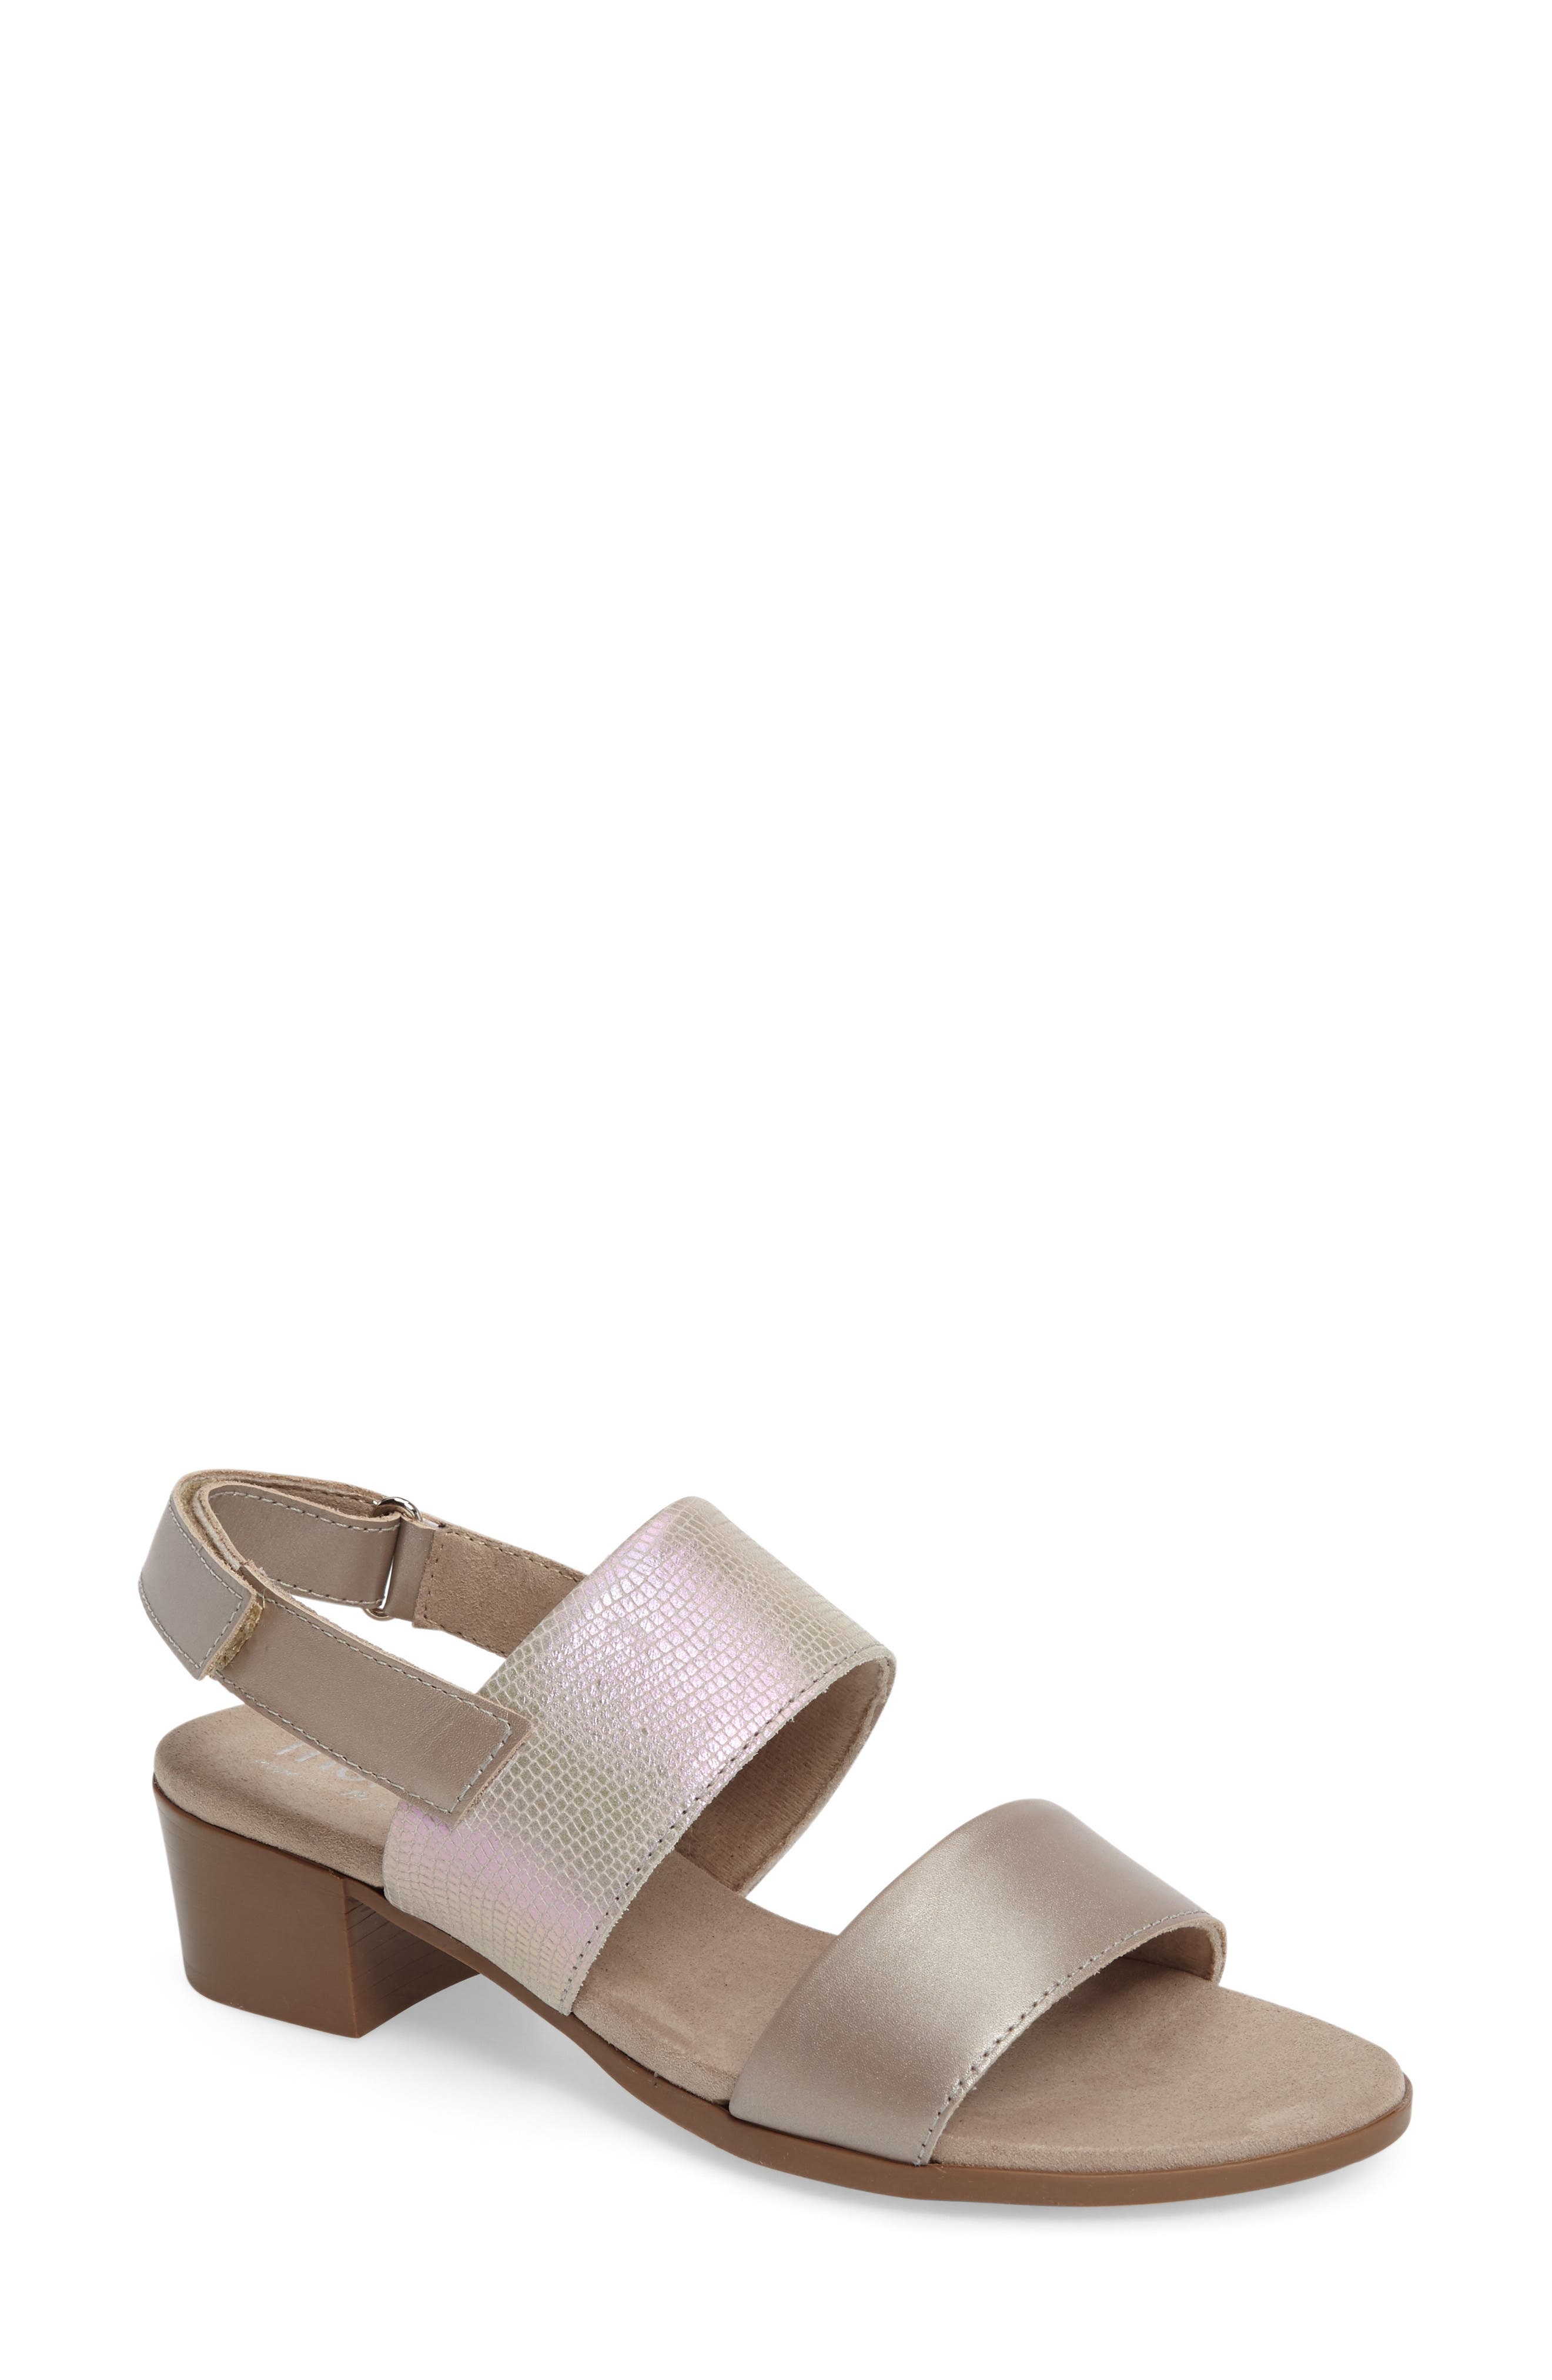 Kristal Sandal,                             Main thumbnail 1, color,                             Pearl Metallic Lizard Leather